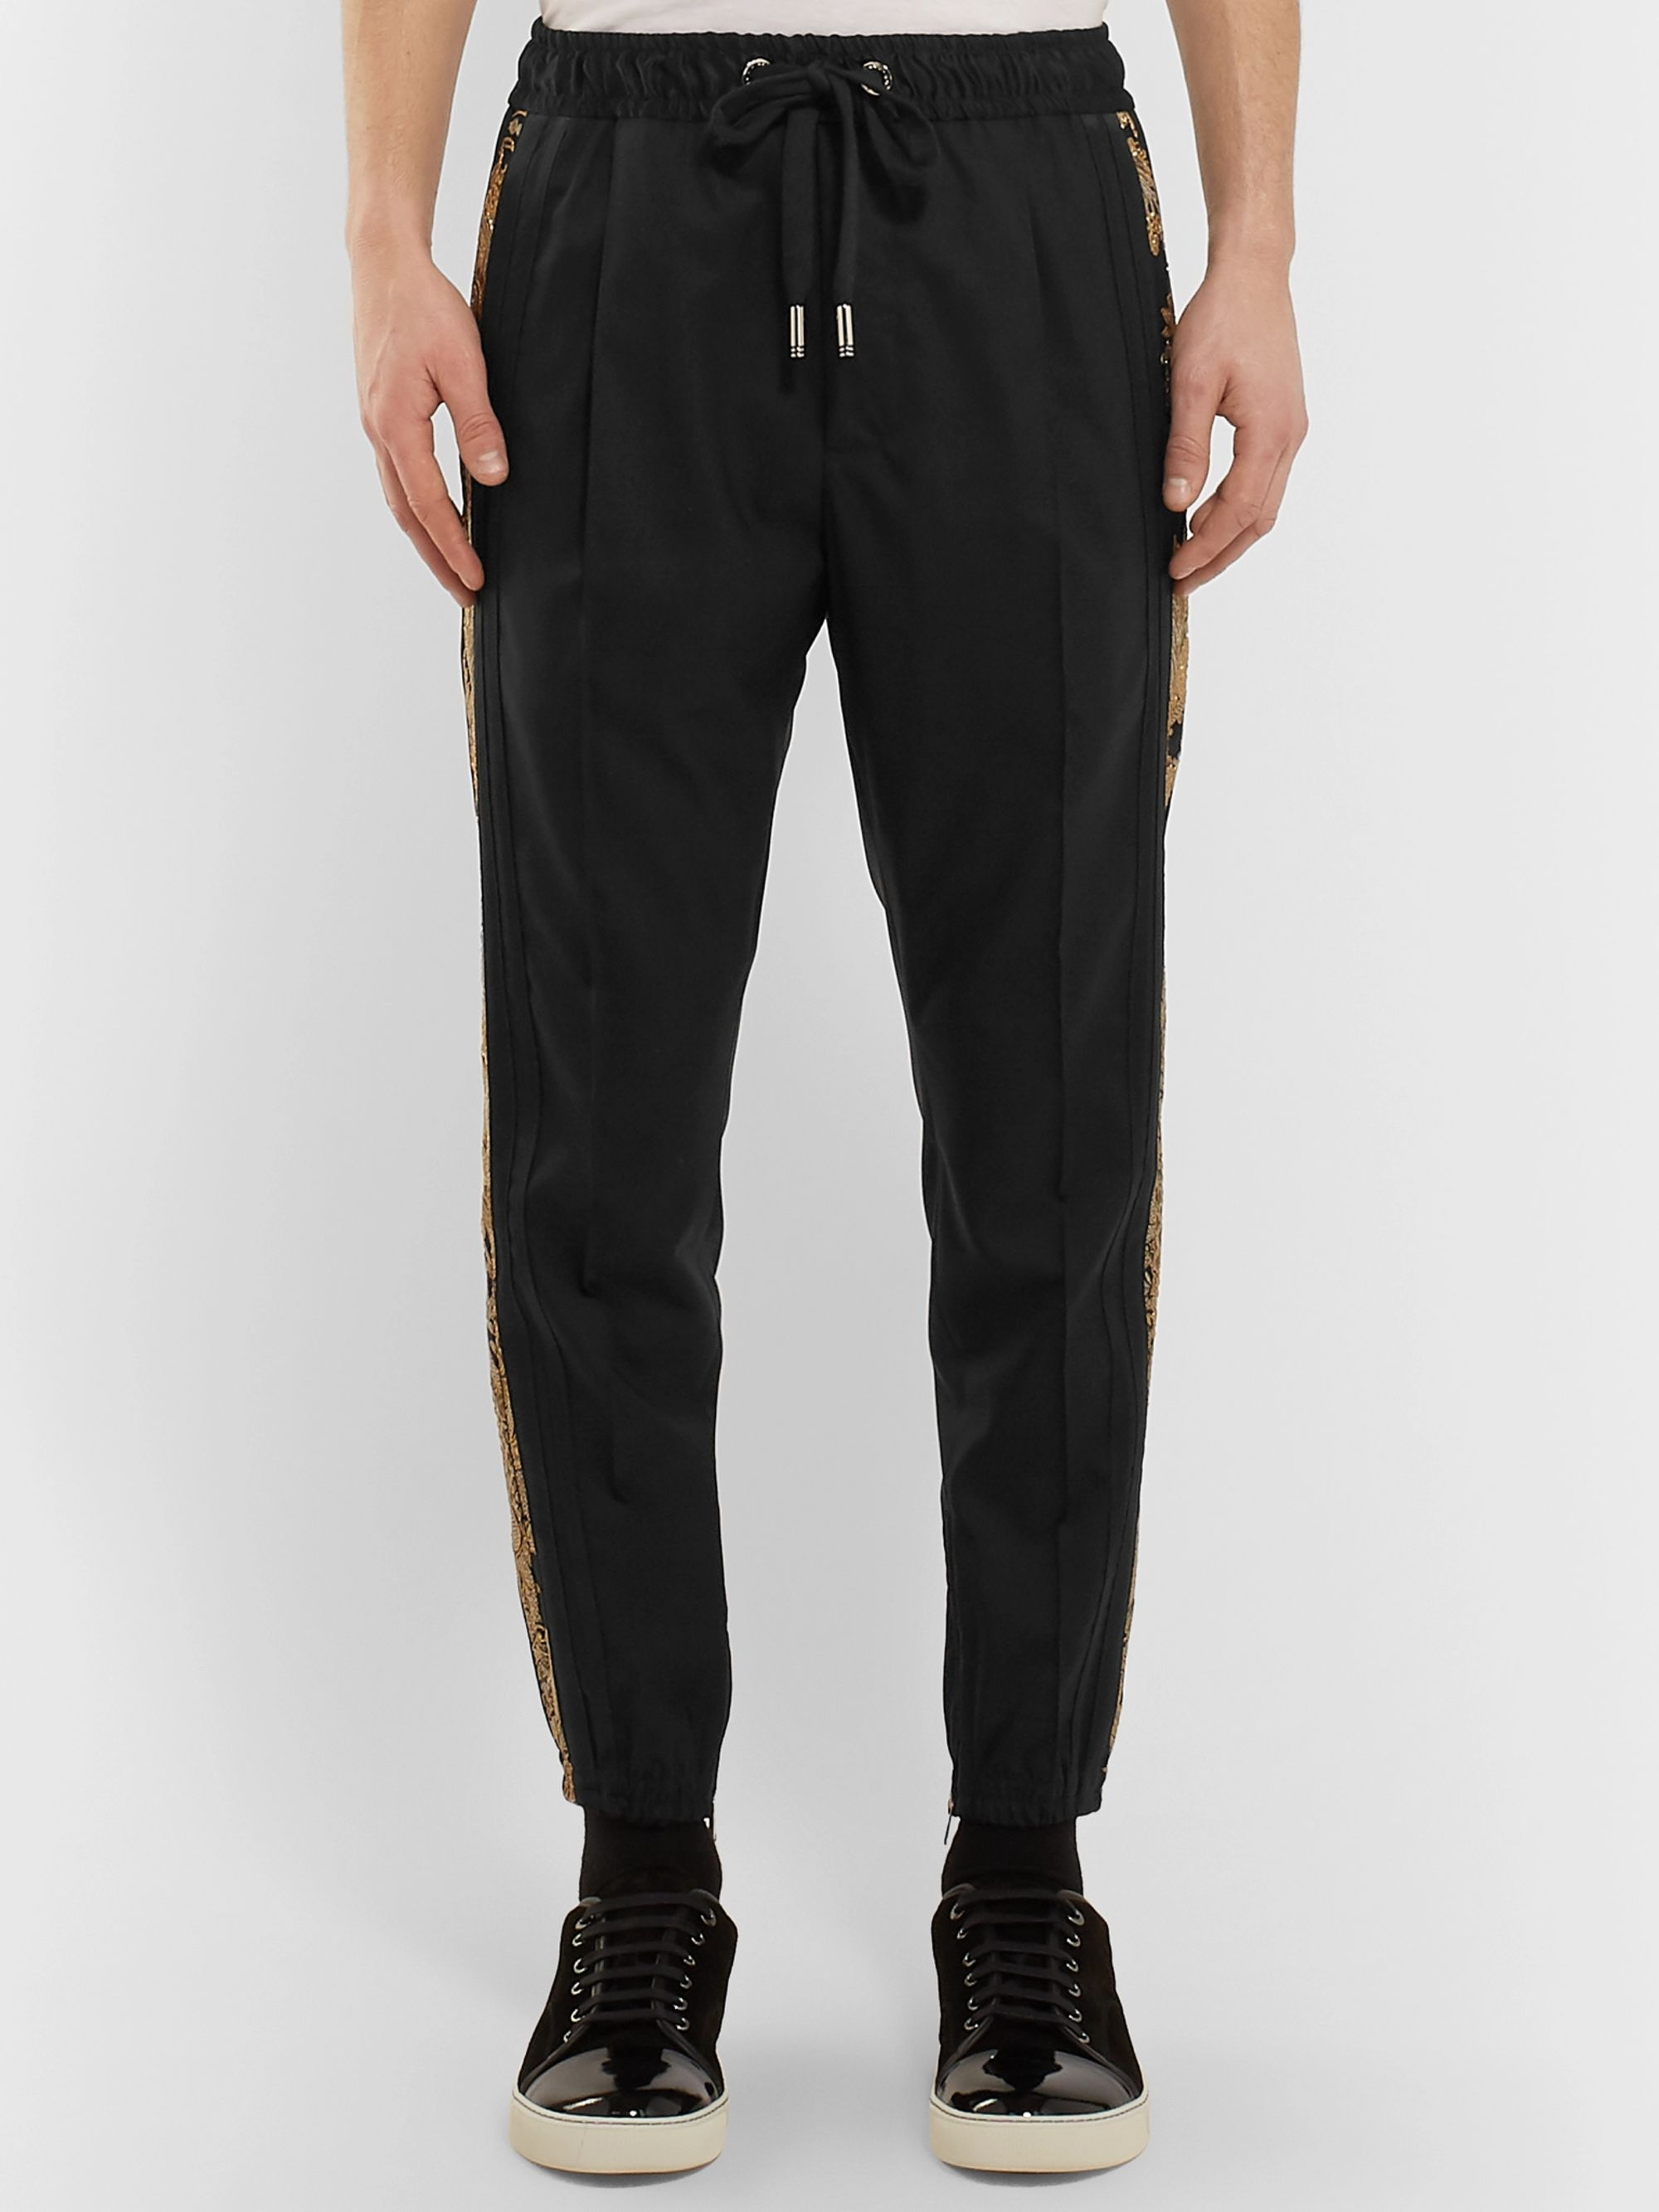 Dolce & Gabbana Tapered Striped Wool-Blend Drawstring Trousers